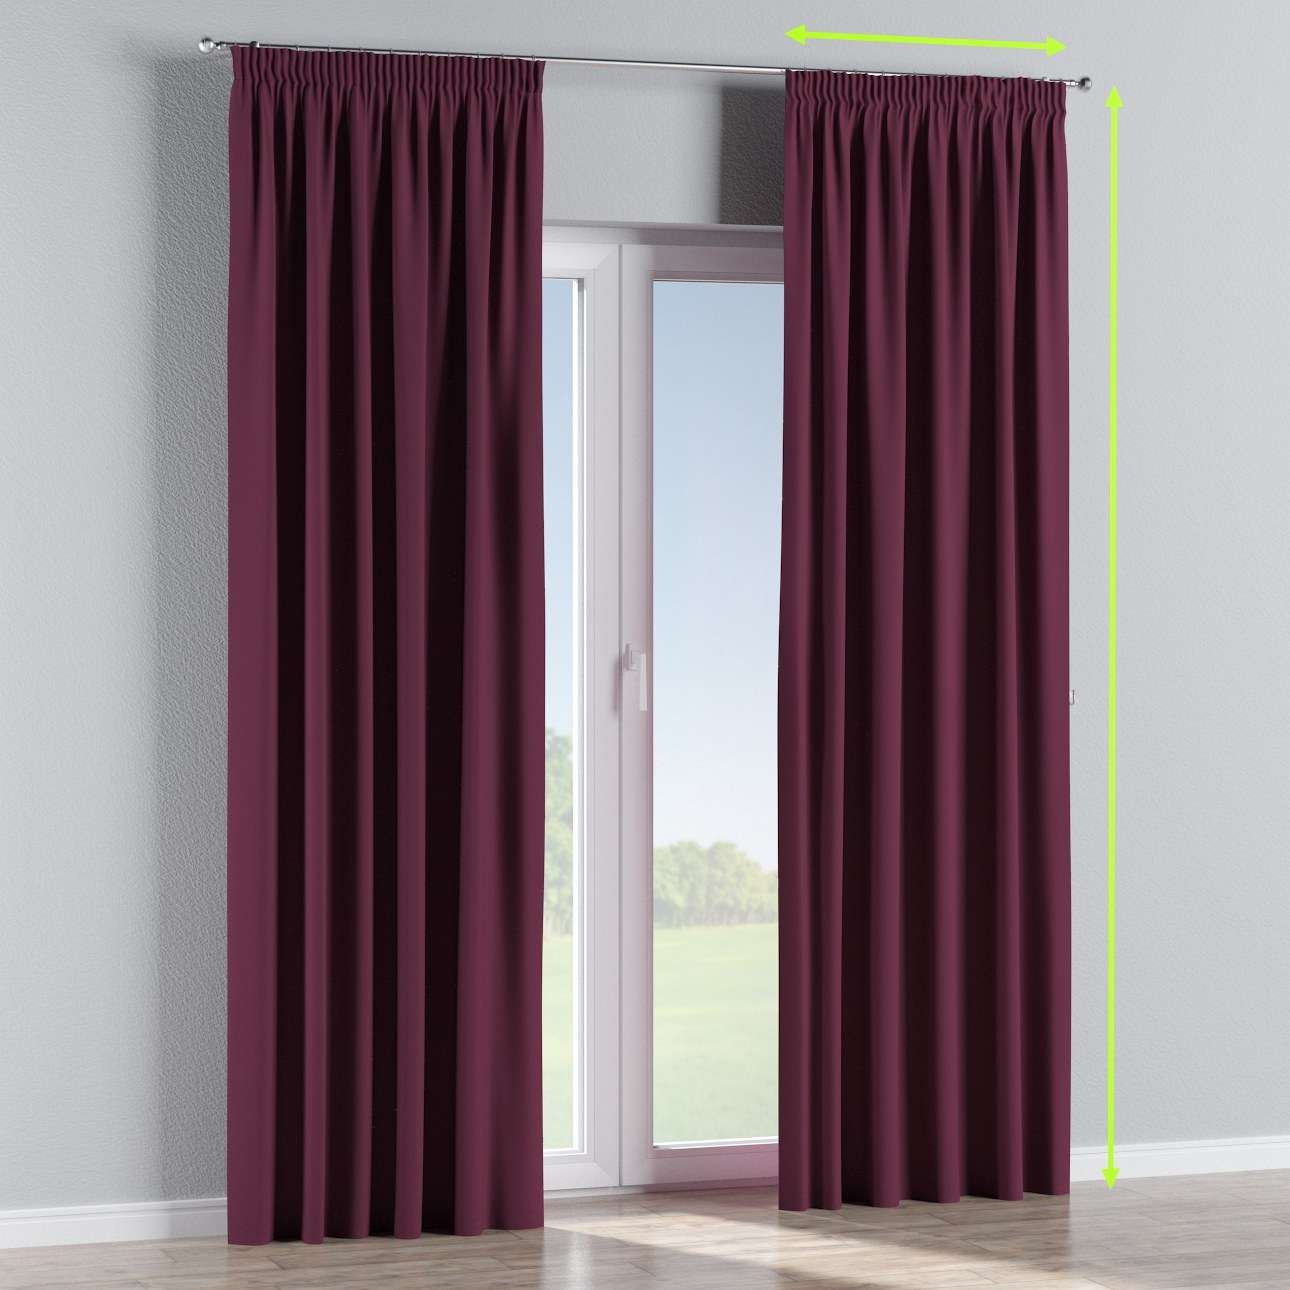 Blackout pencil pleat curtains in collection Blackout, fabric: 269-53